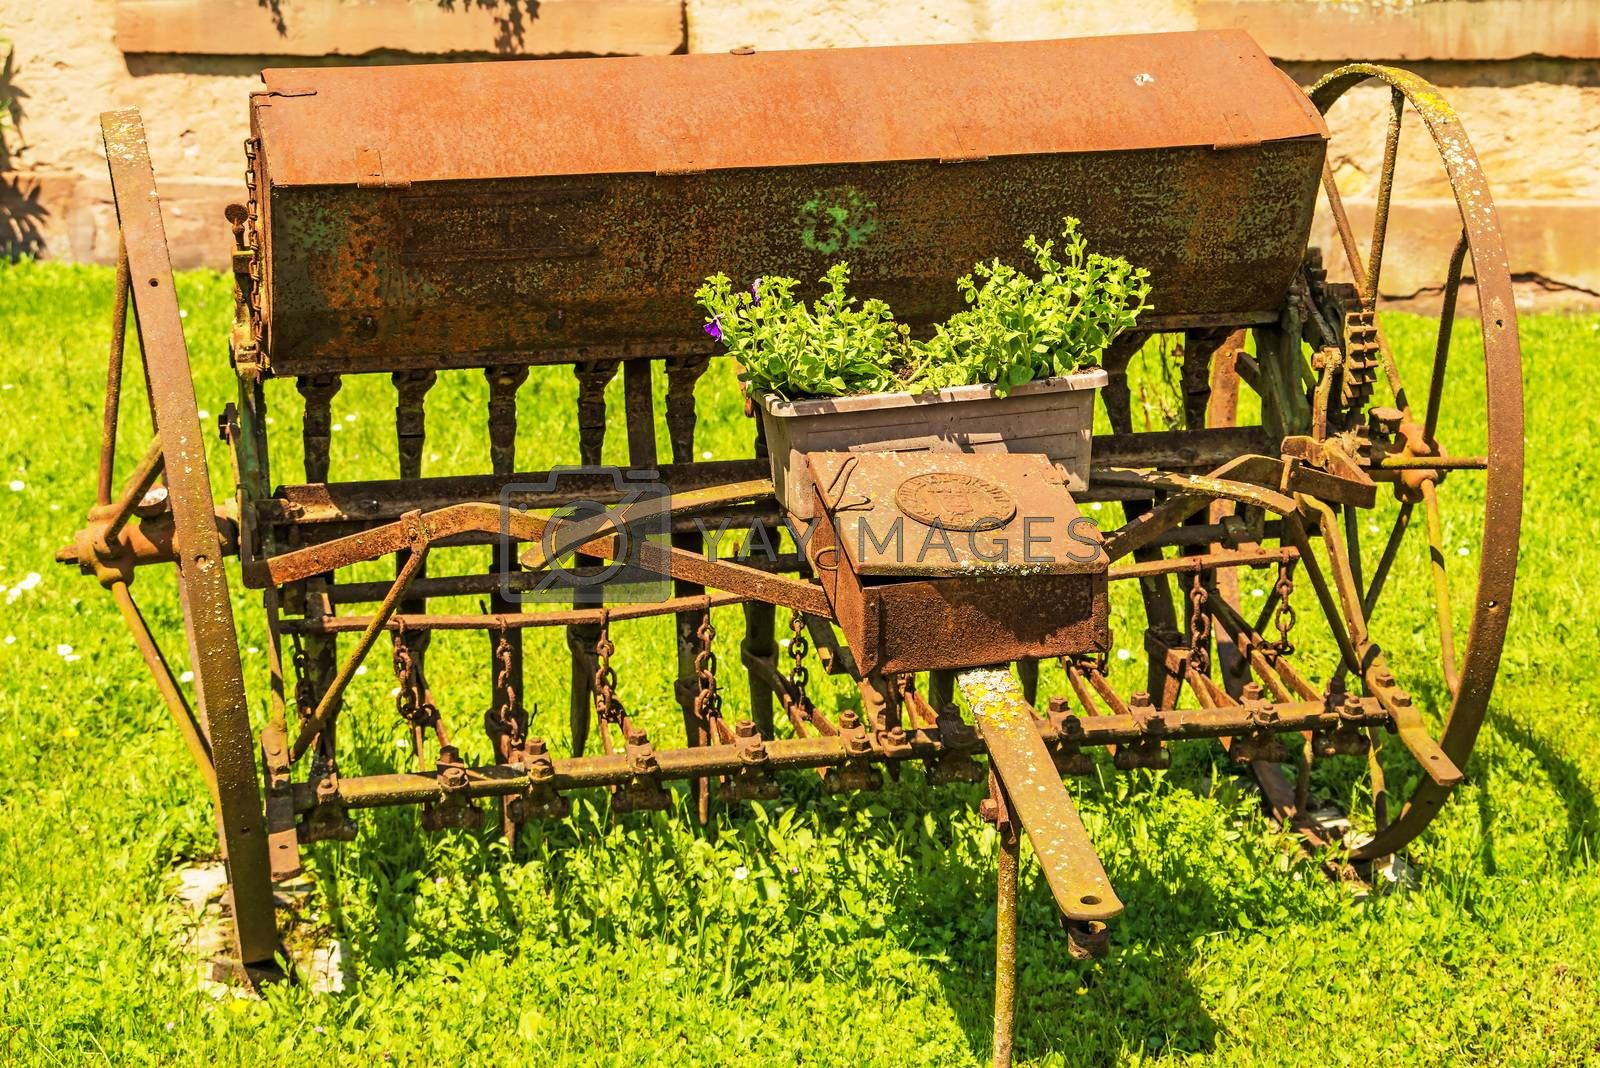 old agricultural machine by bremse